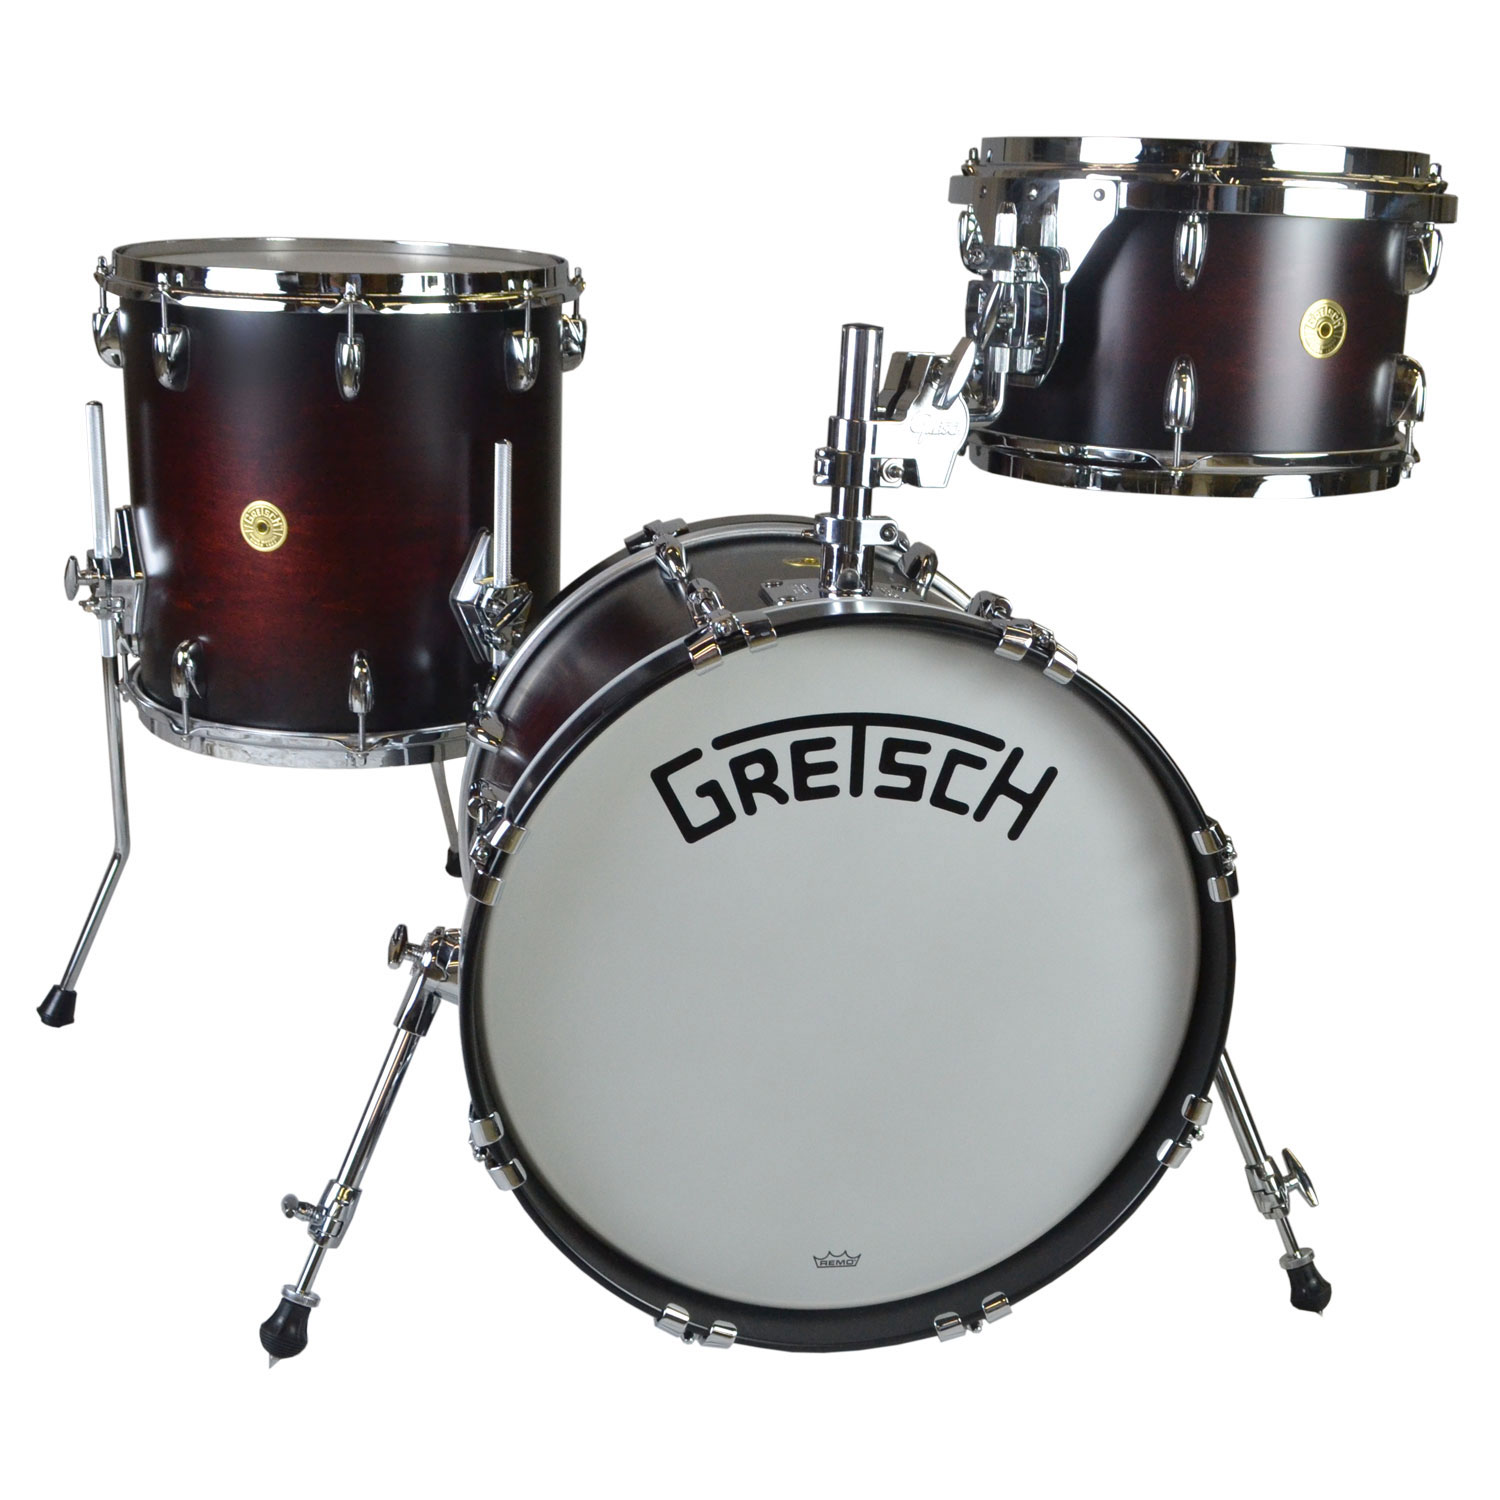 "Gretsch Broadkaster 3-Piece Drum Set Shell Pack (18"" Bass, 12/14"" Toms) in Satin Chestnut Duco"